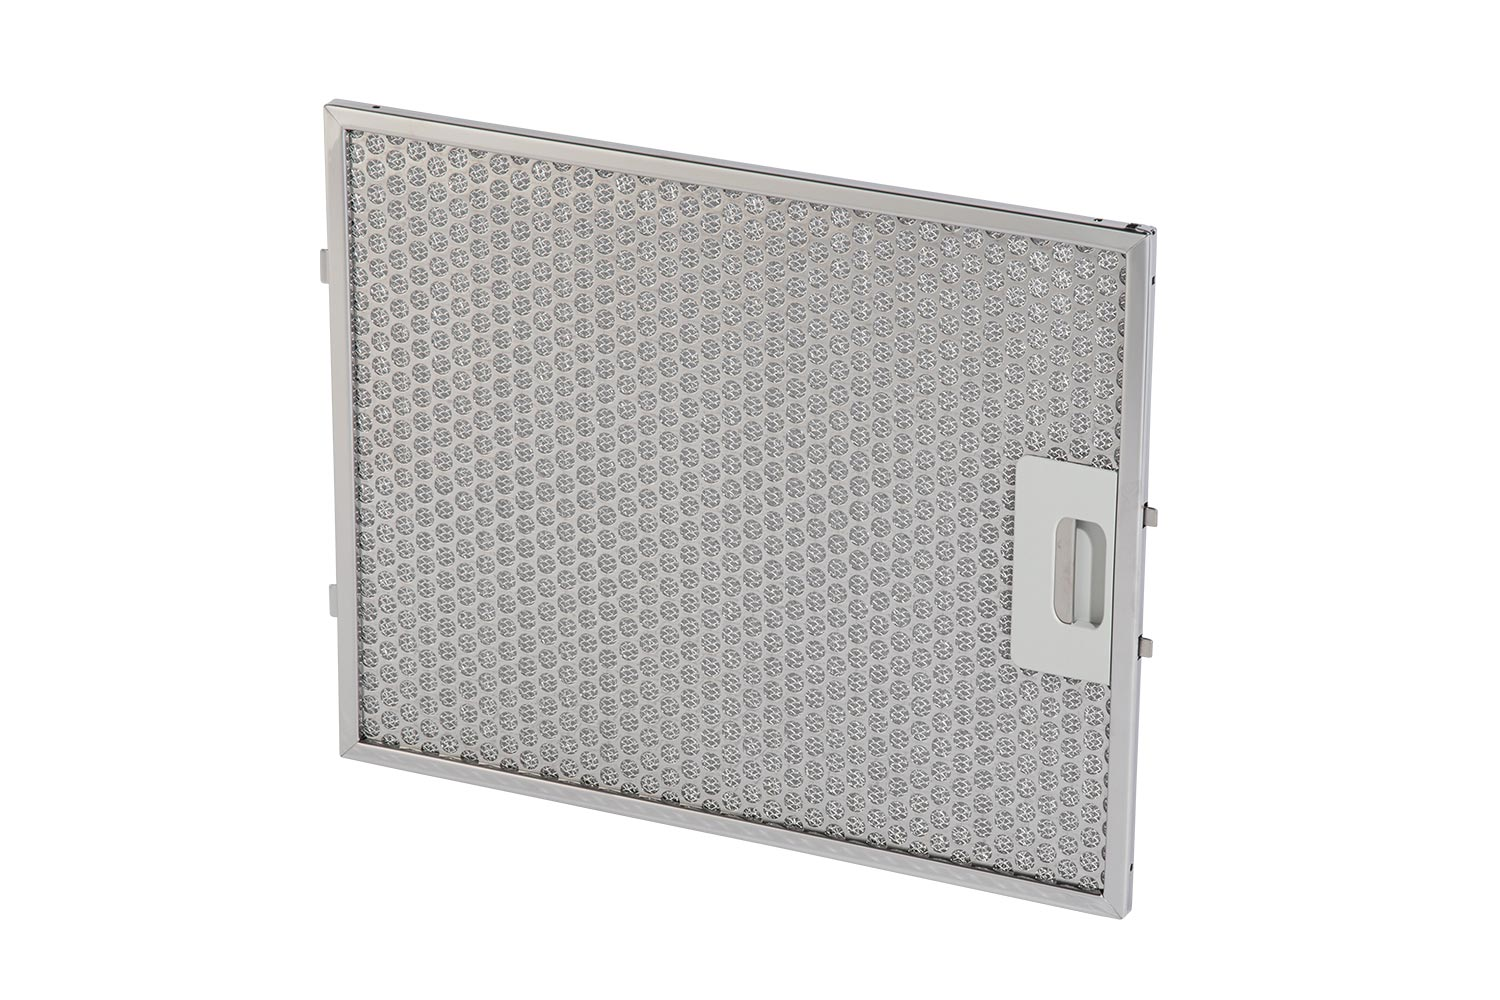 Mesh (Stainless Steel) for DS3131S, KLS-3131RS, DS3170S & WM2190S - YT142.2120.12